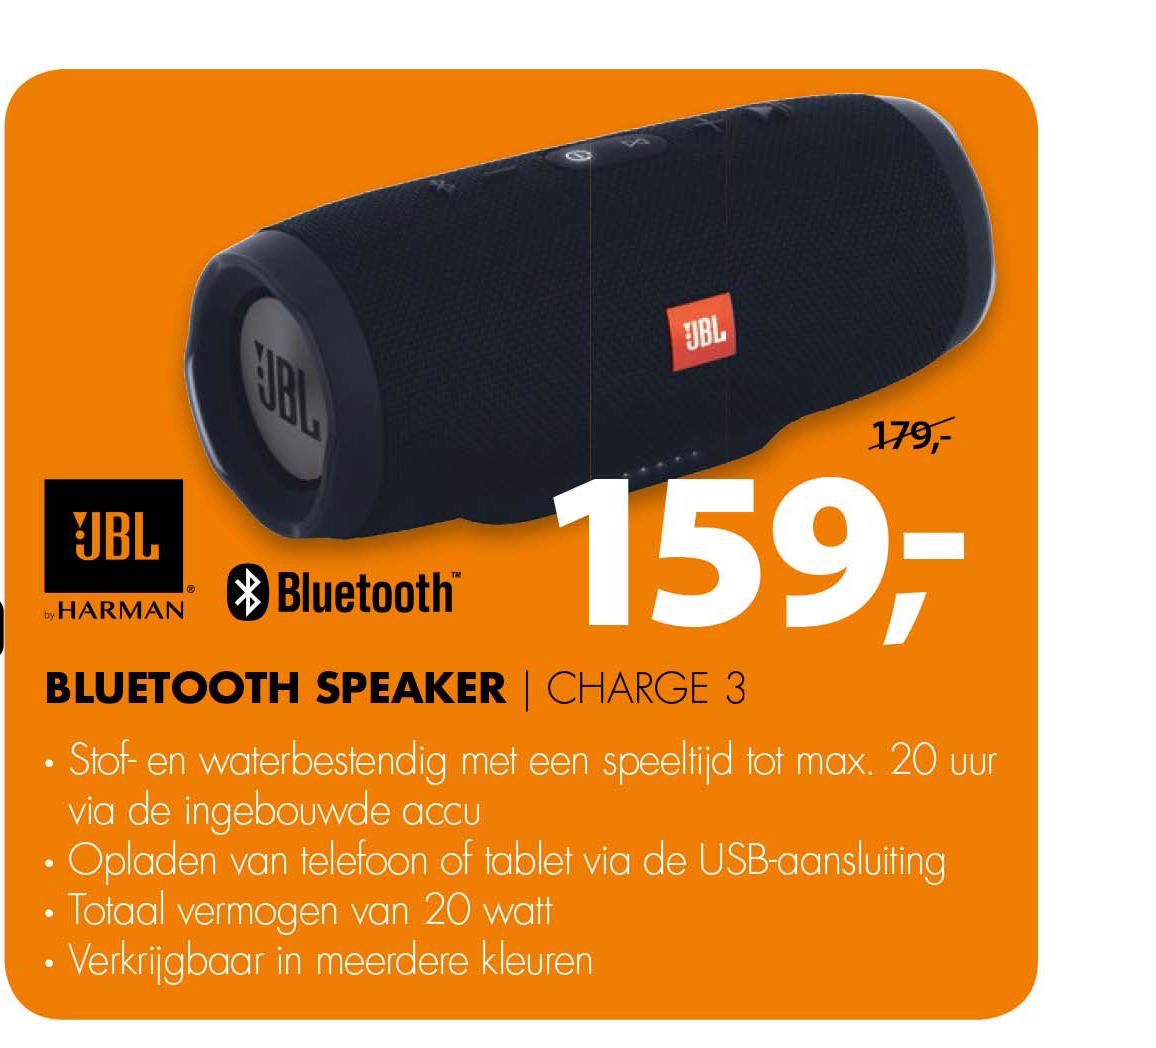 Expert Jbl Bluetooth Speaker Charge 3